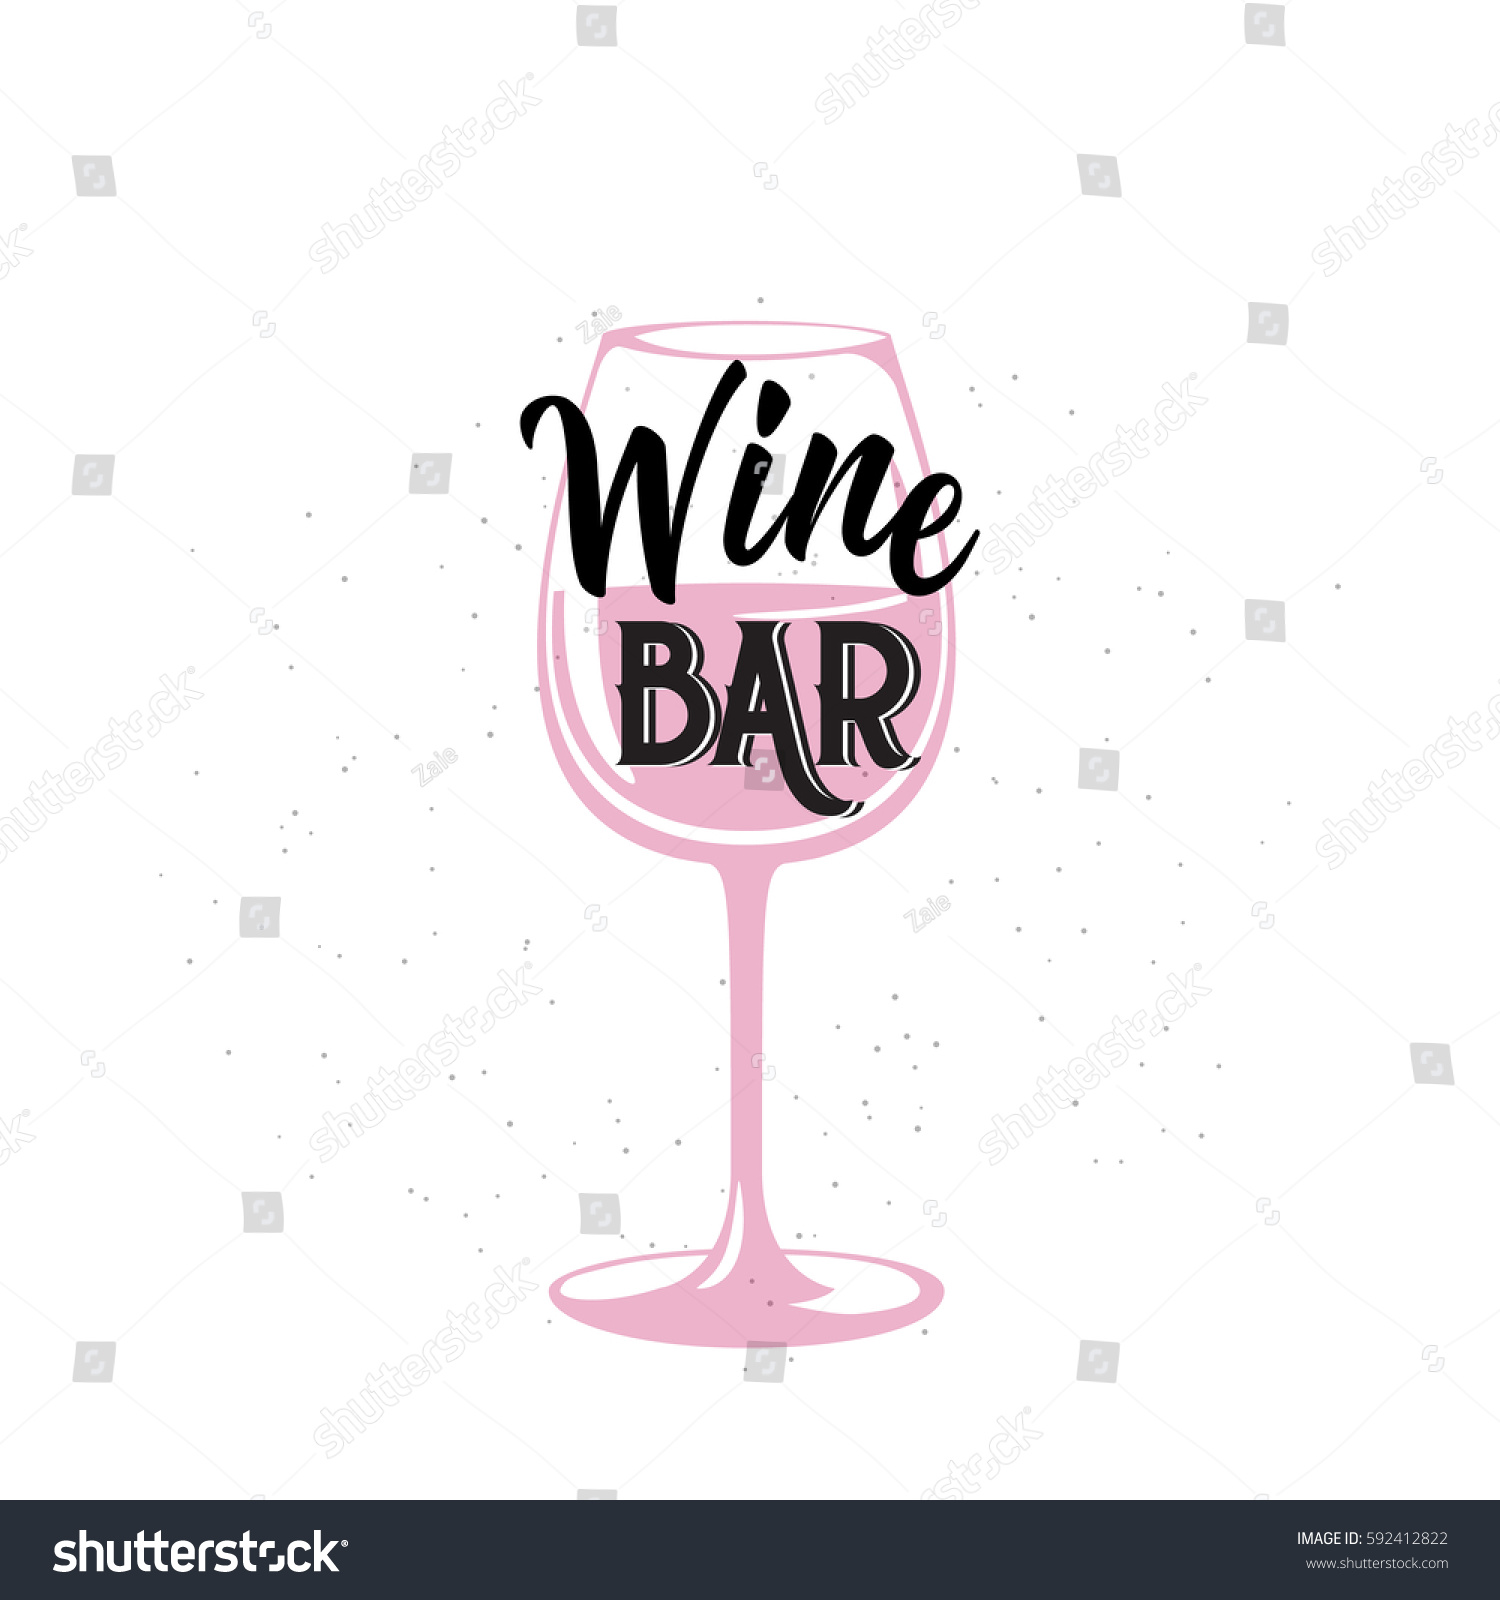 Vector Illustration Drink Related Typographic Quote Stock Vector ...